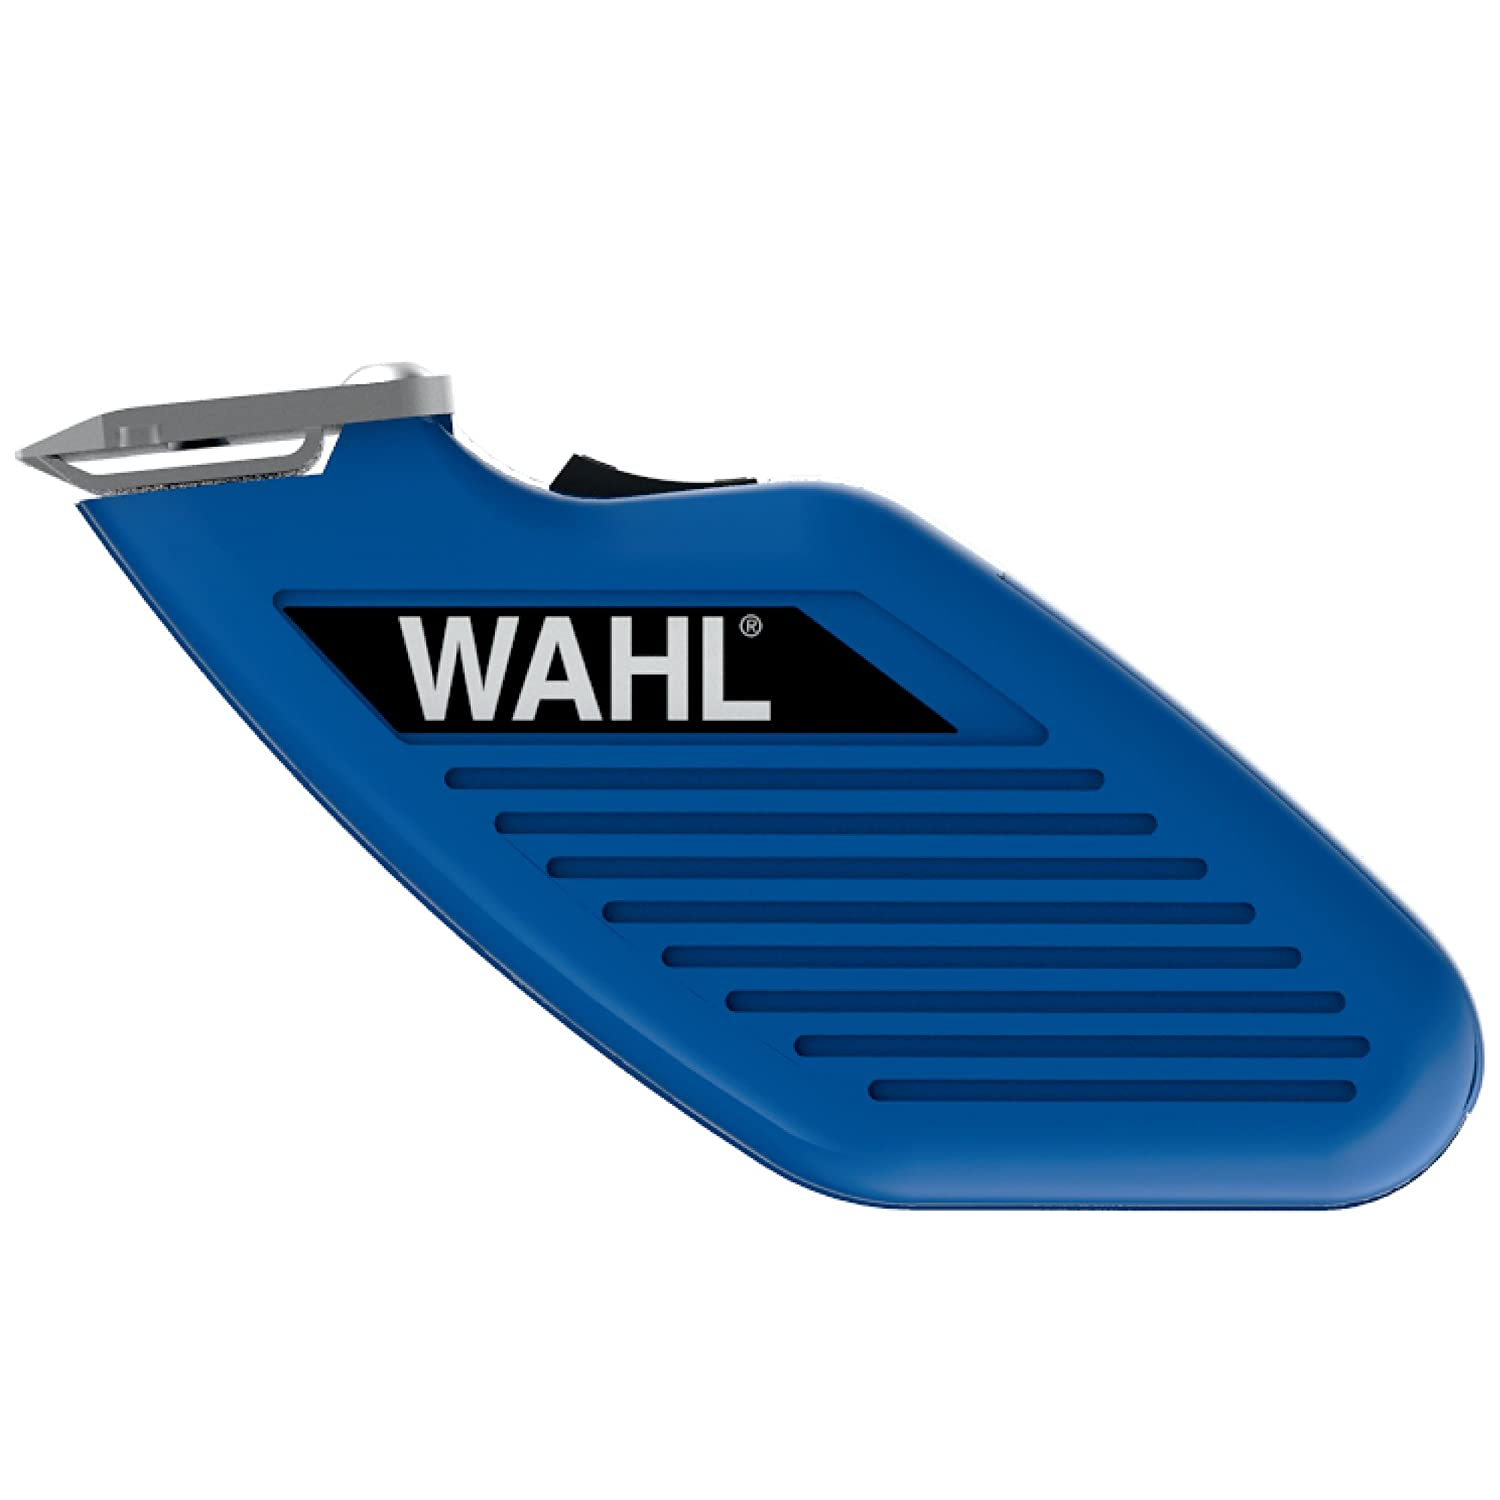 Wahl Professional Animal Pocket Pro Trimmer Purple #9861-930 Wahl Clipper Corp.